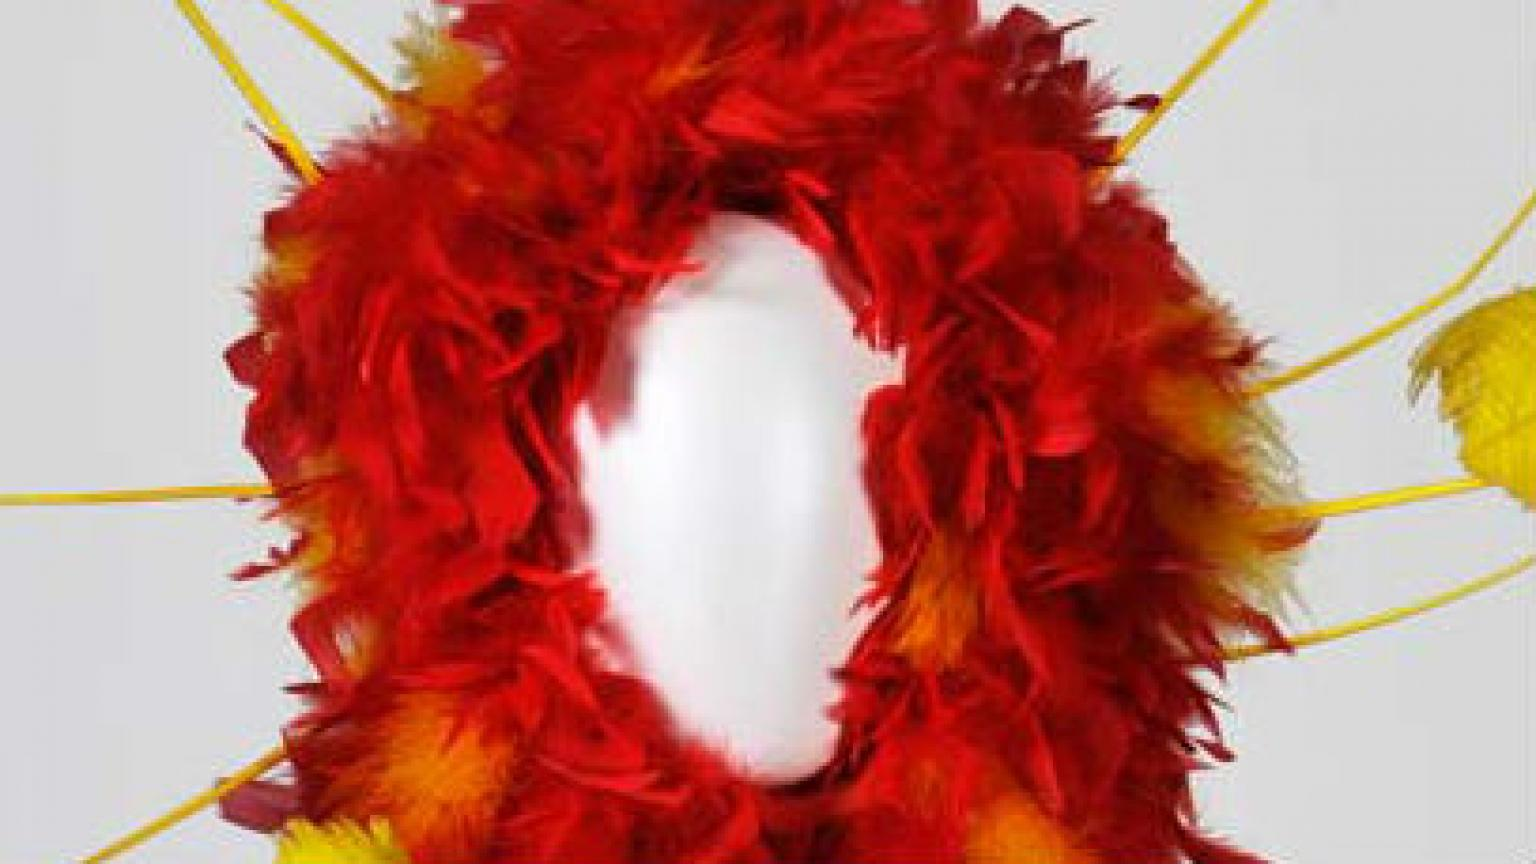 Red and yellow feathered headpiece from 'The Adventures of Priscilla, Queen of the Desert'.